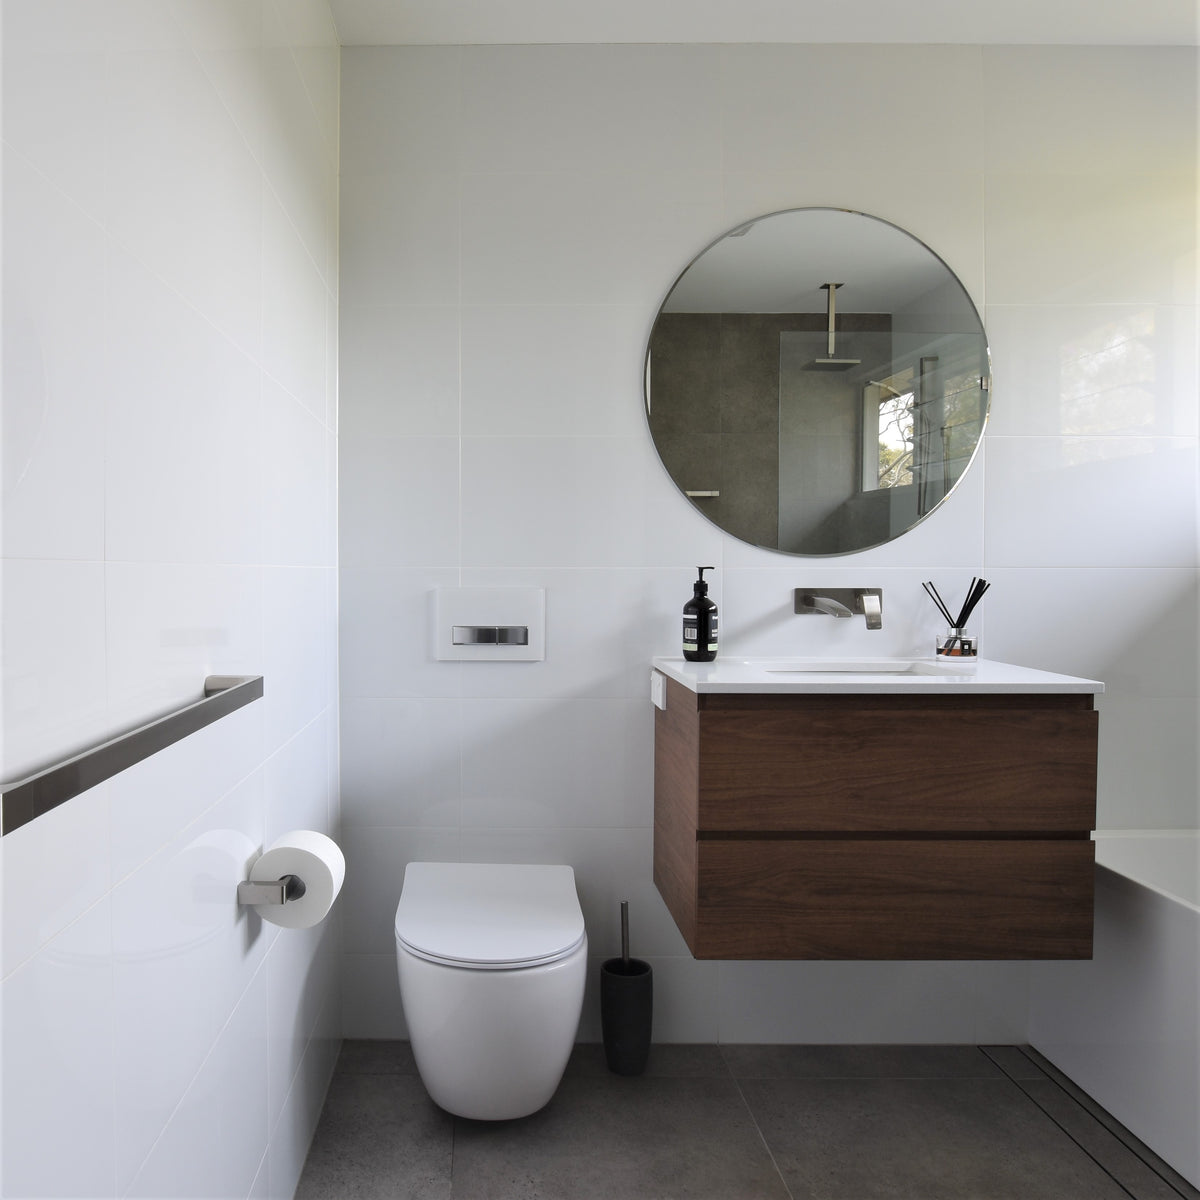 #82 - Bathrooms: Concrete grey with timber coloured vanity ...